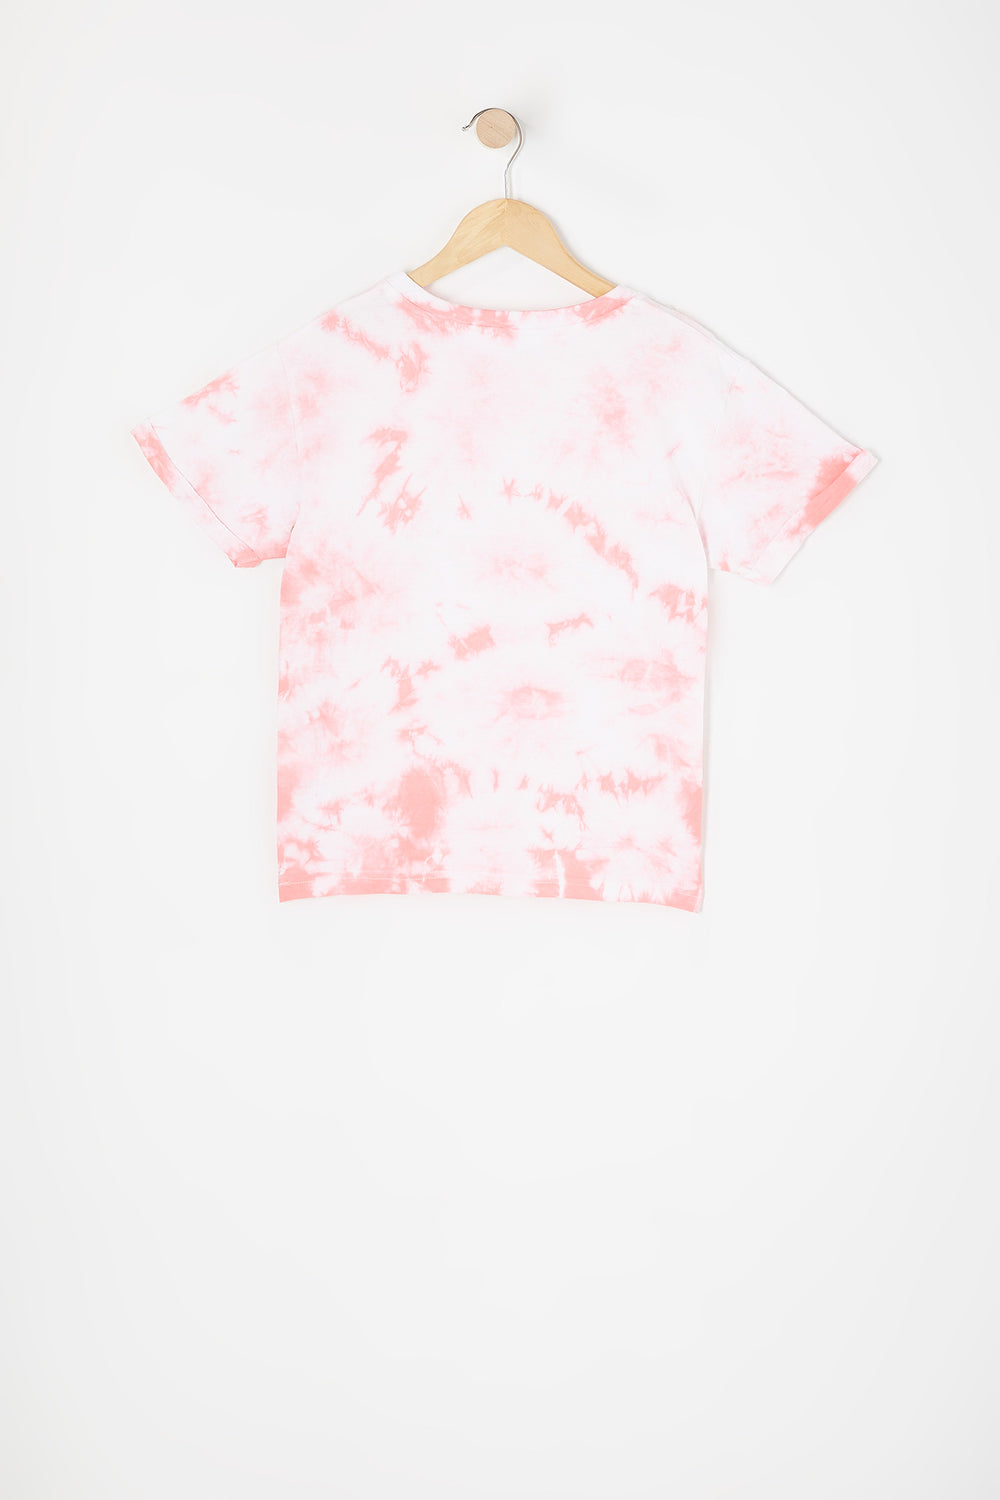 Girls Pink and White Tie Dye Boyfriend T-Shirt Pink